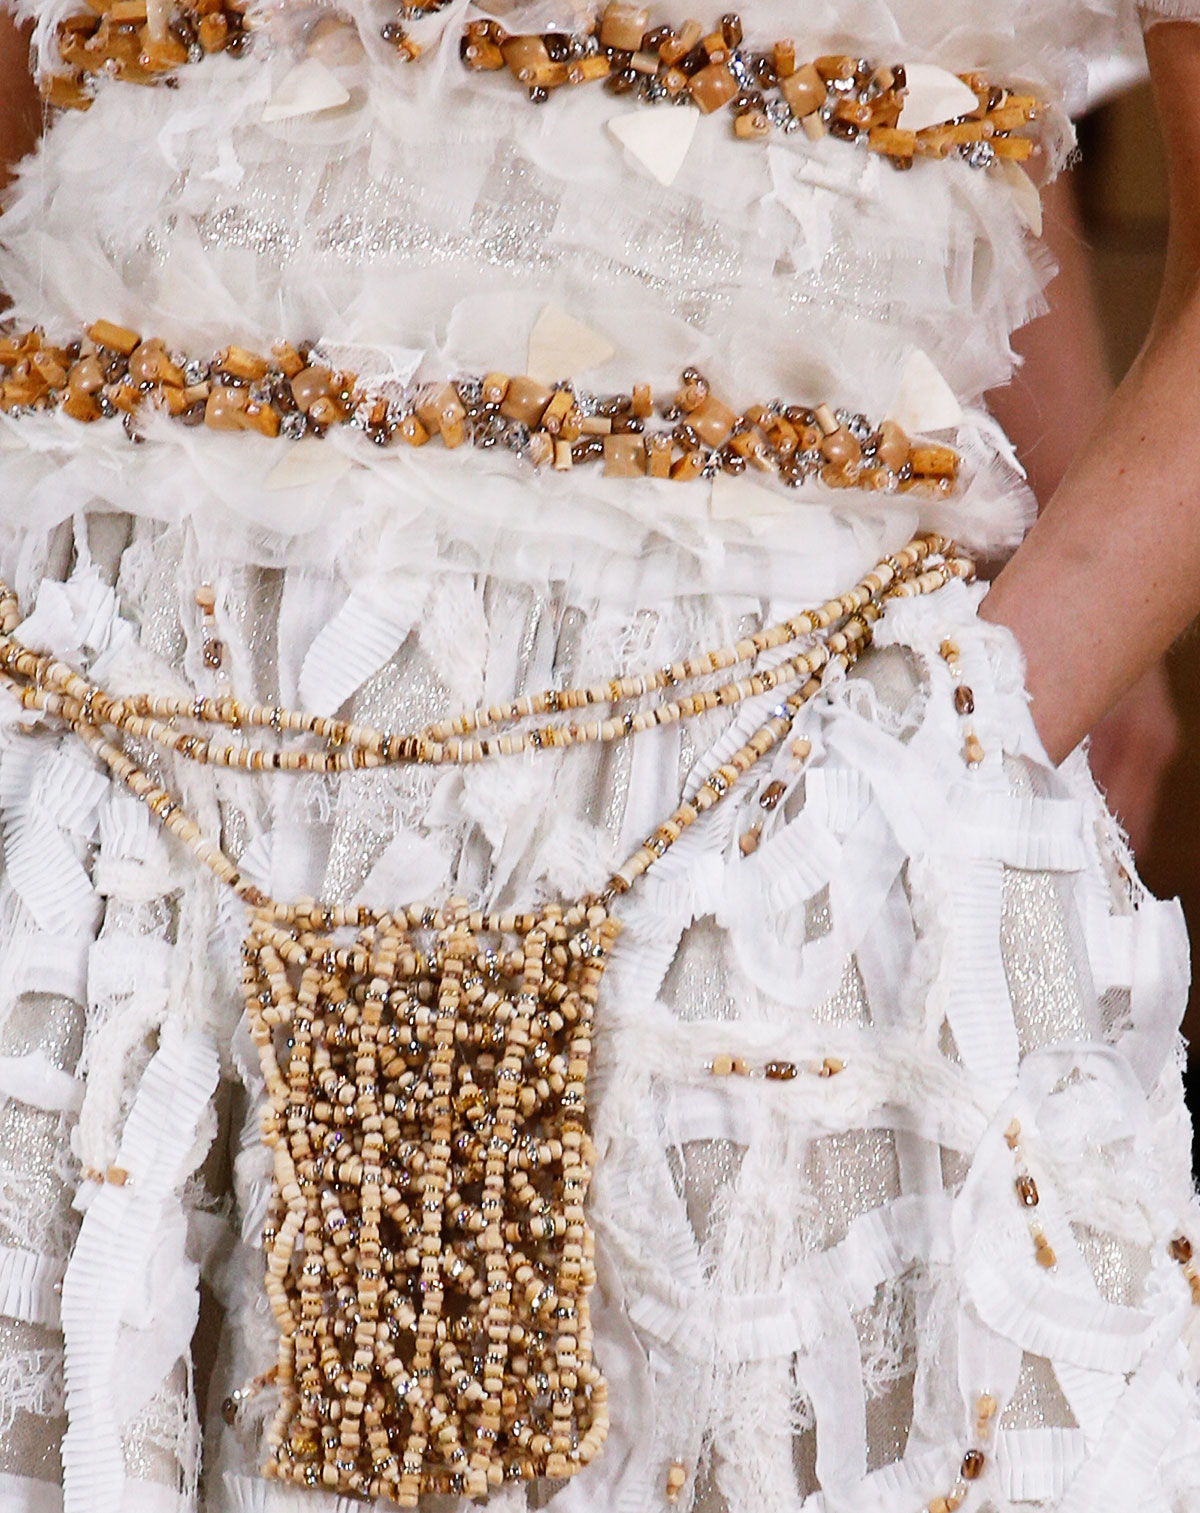 Chanel Summer 2016 Couture wood fabric scraps